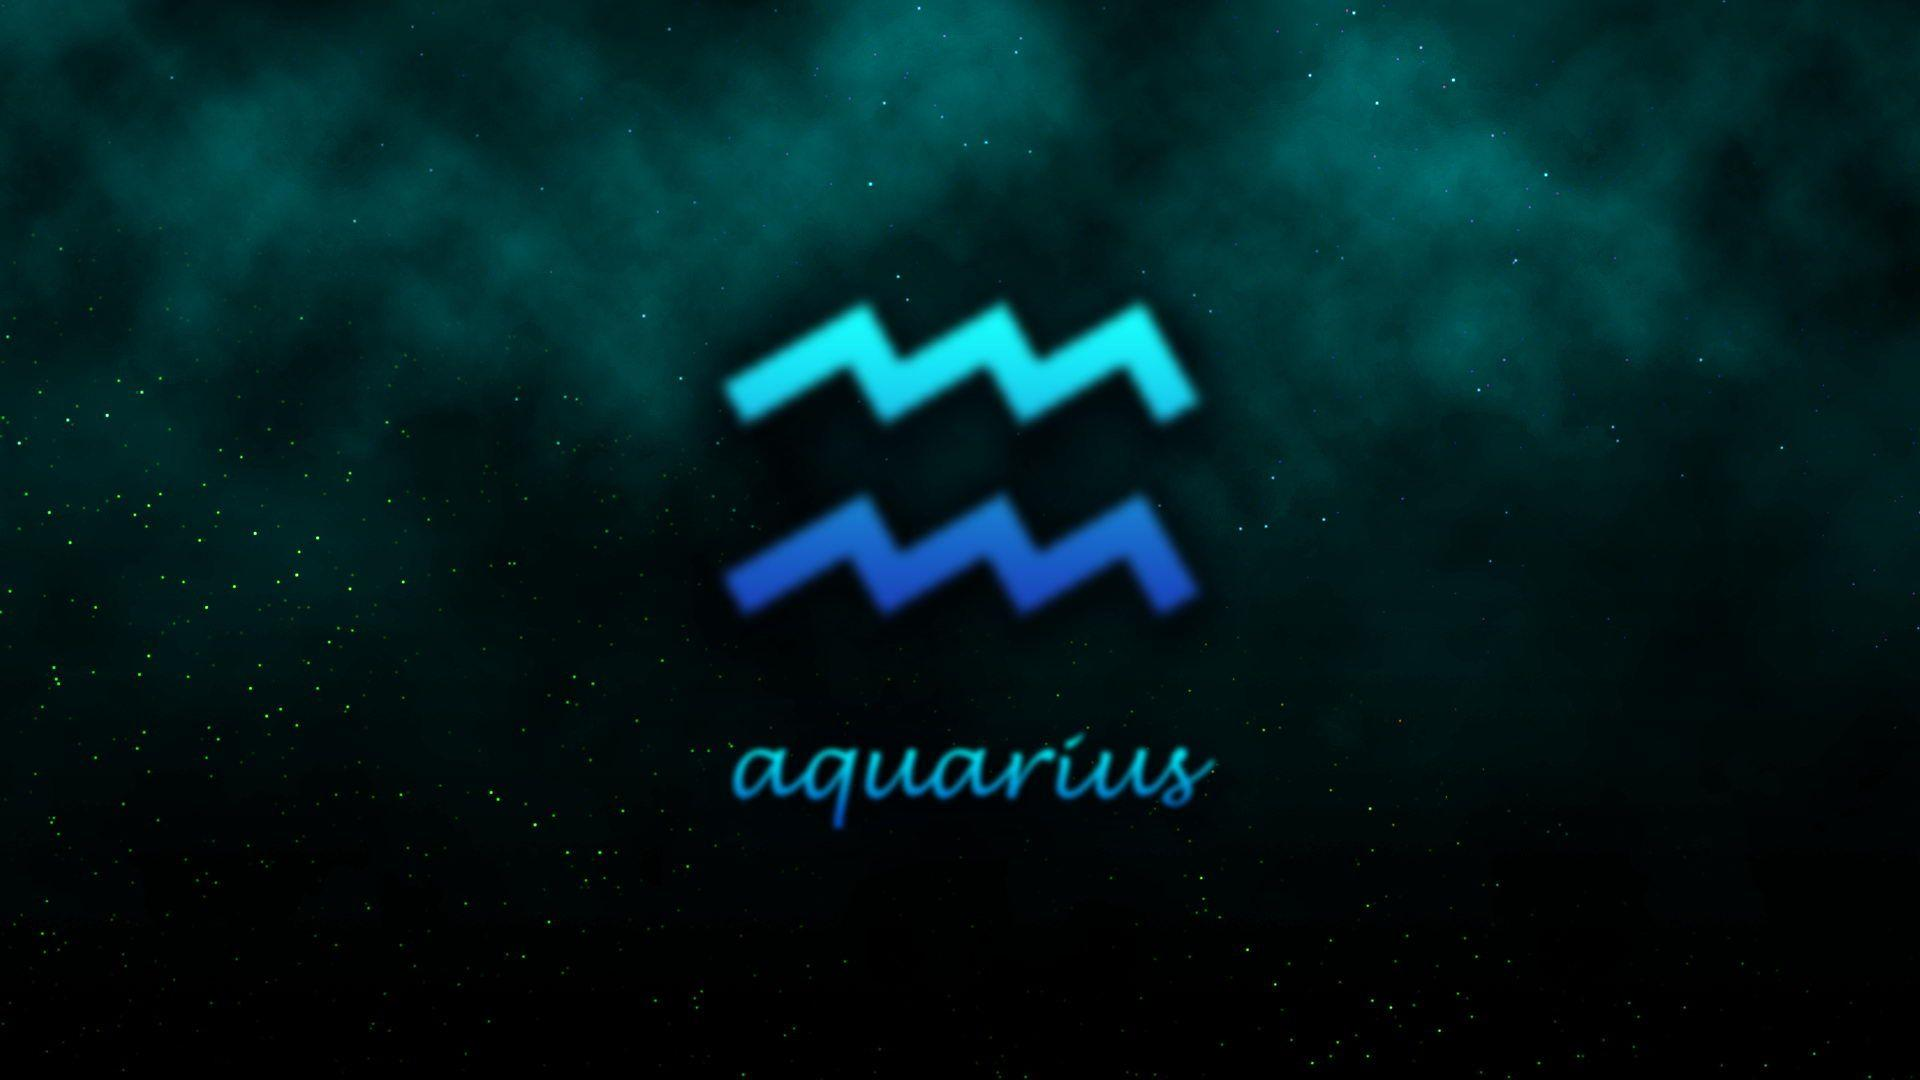 Image For > Aquarius Wallpapers For Mobile